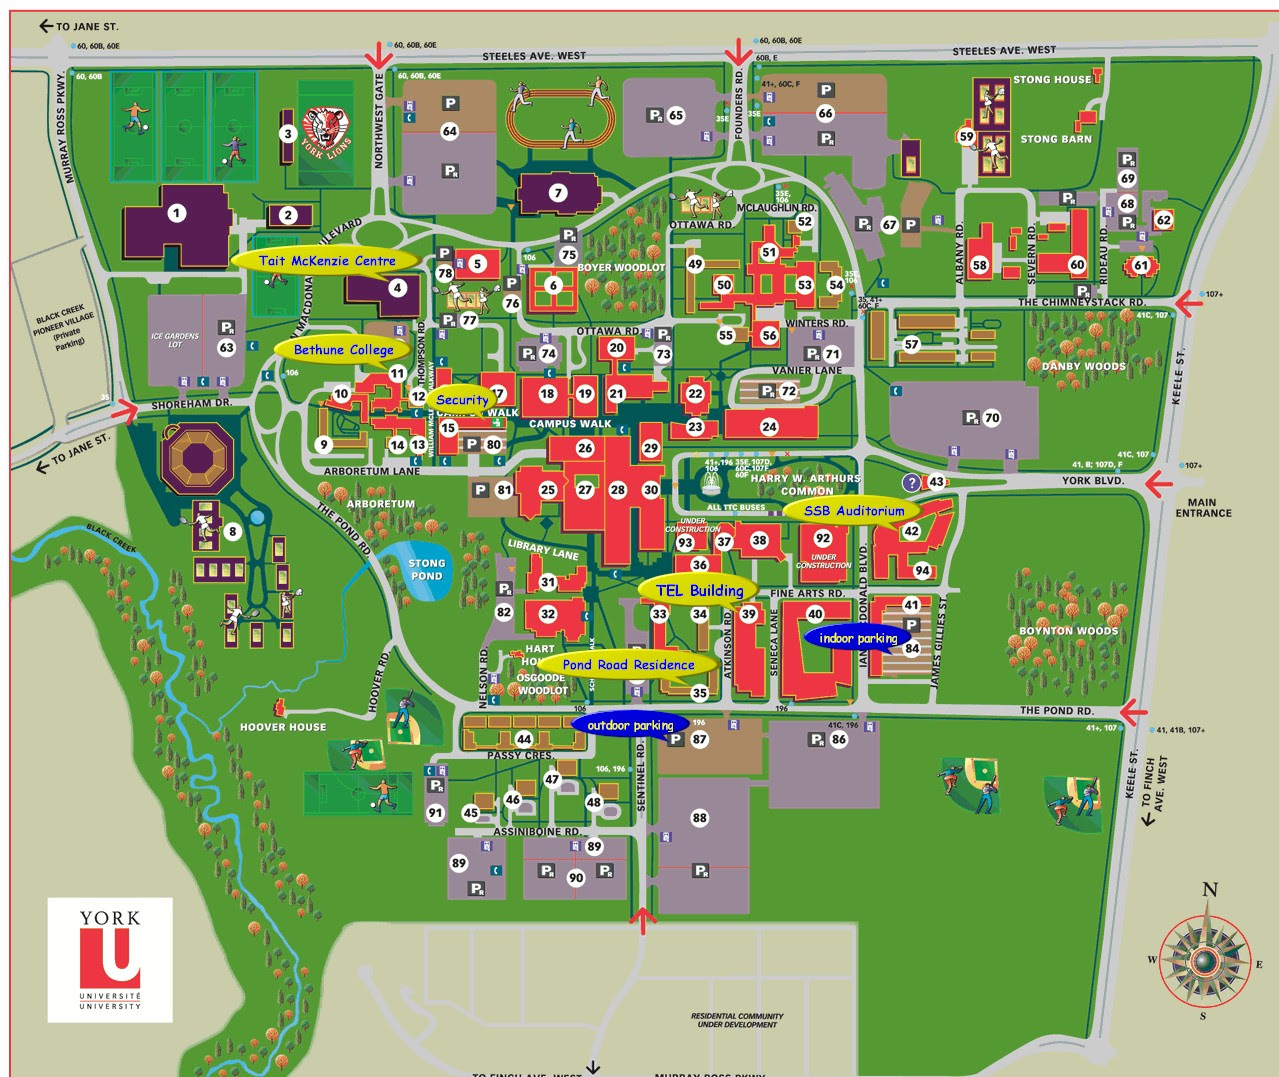 York Campus Map York Campus Map | Bedroom 2018